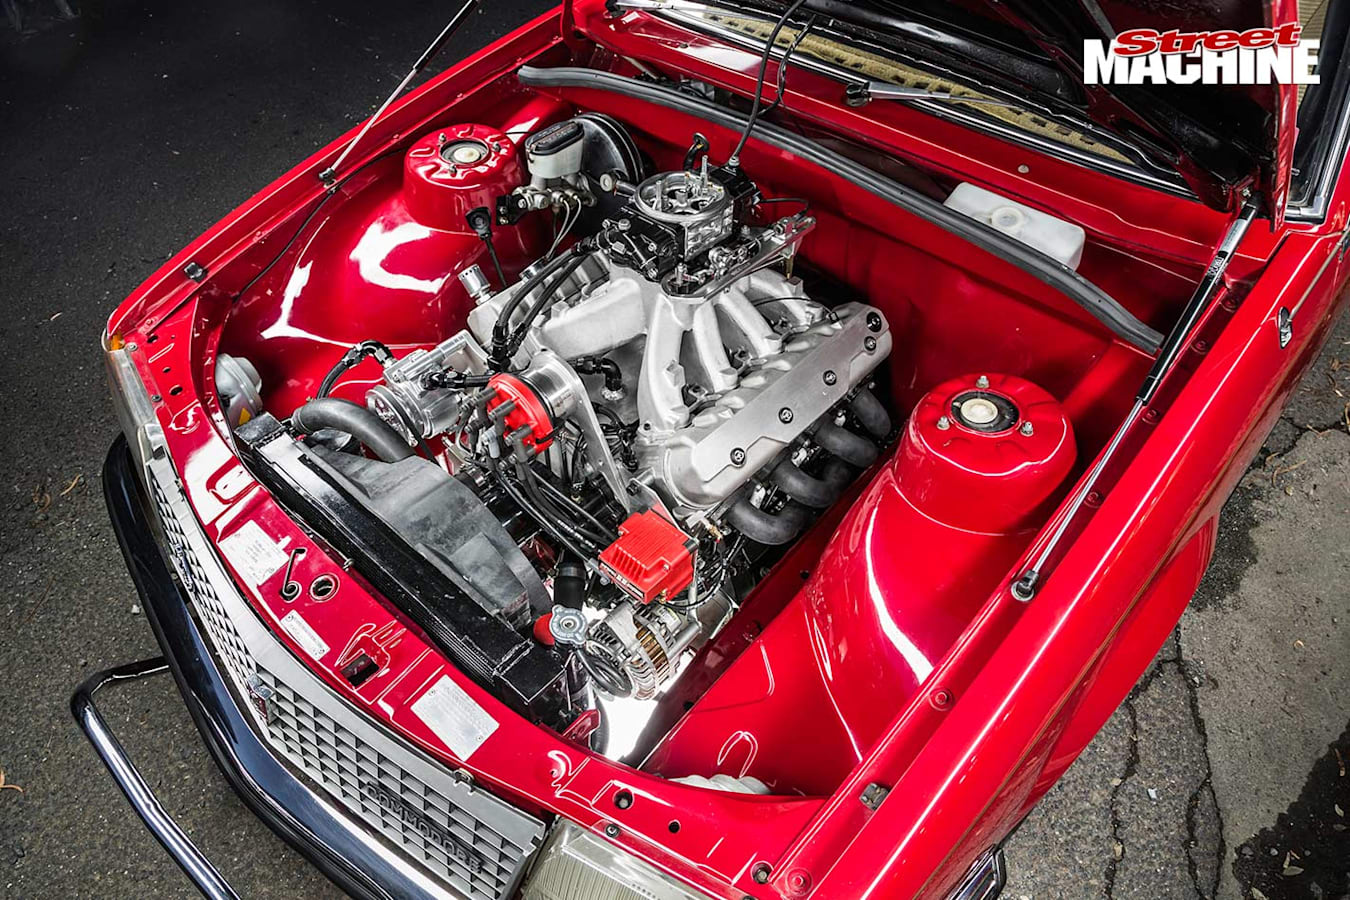 Holden VC Commodore engine bay